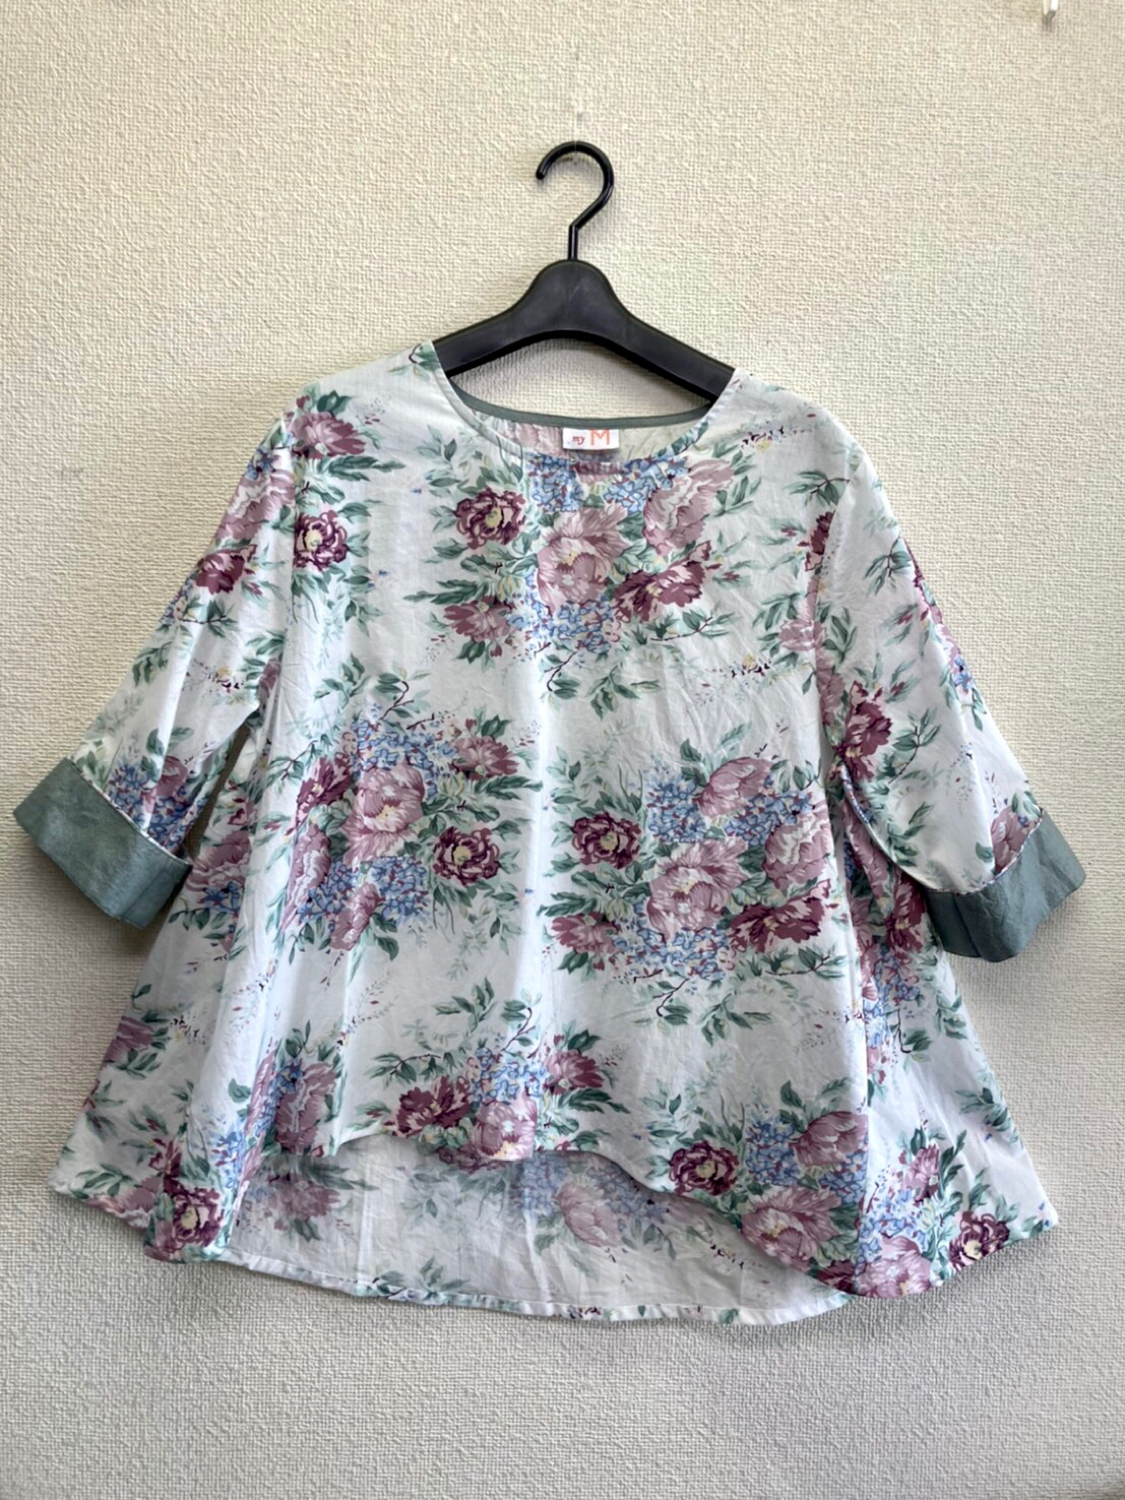 pull_over_blouse_1217-1A_1309